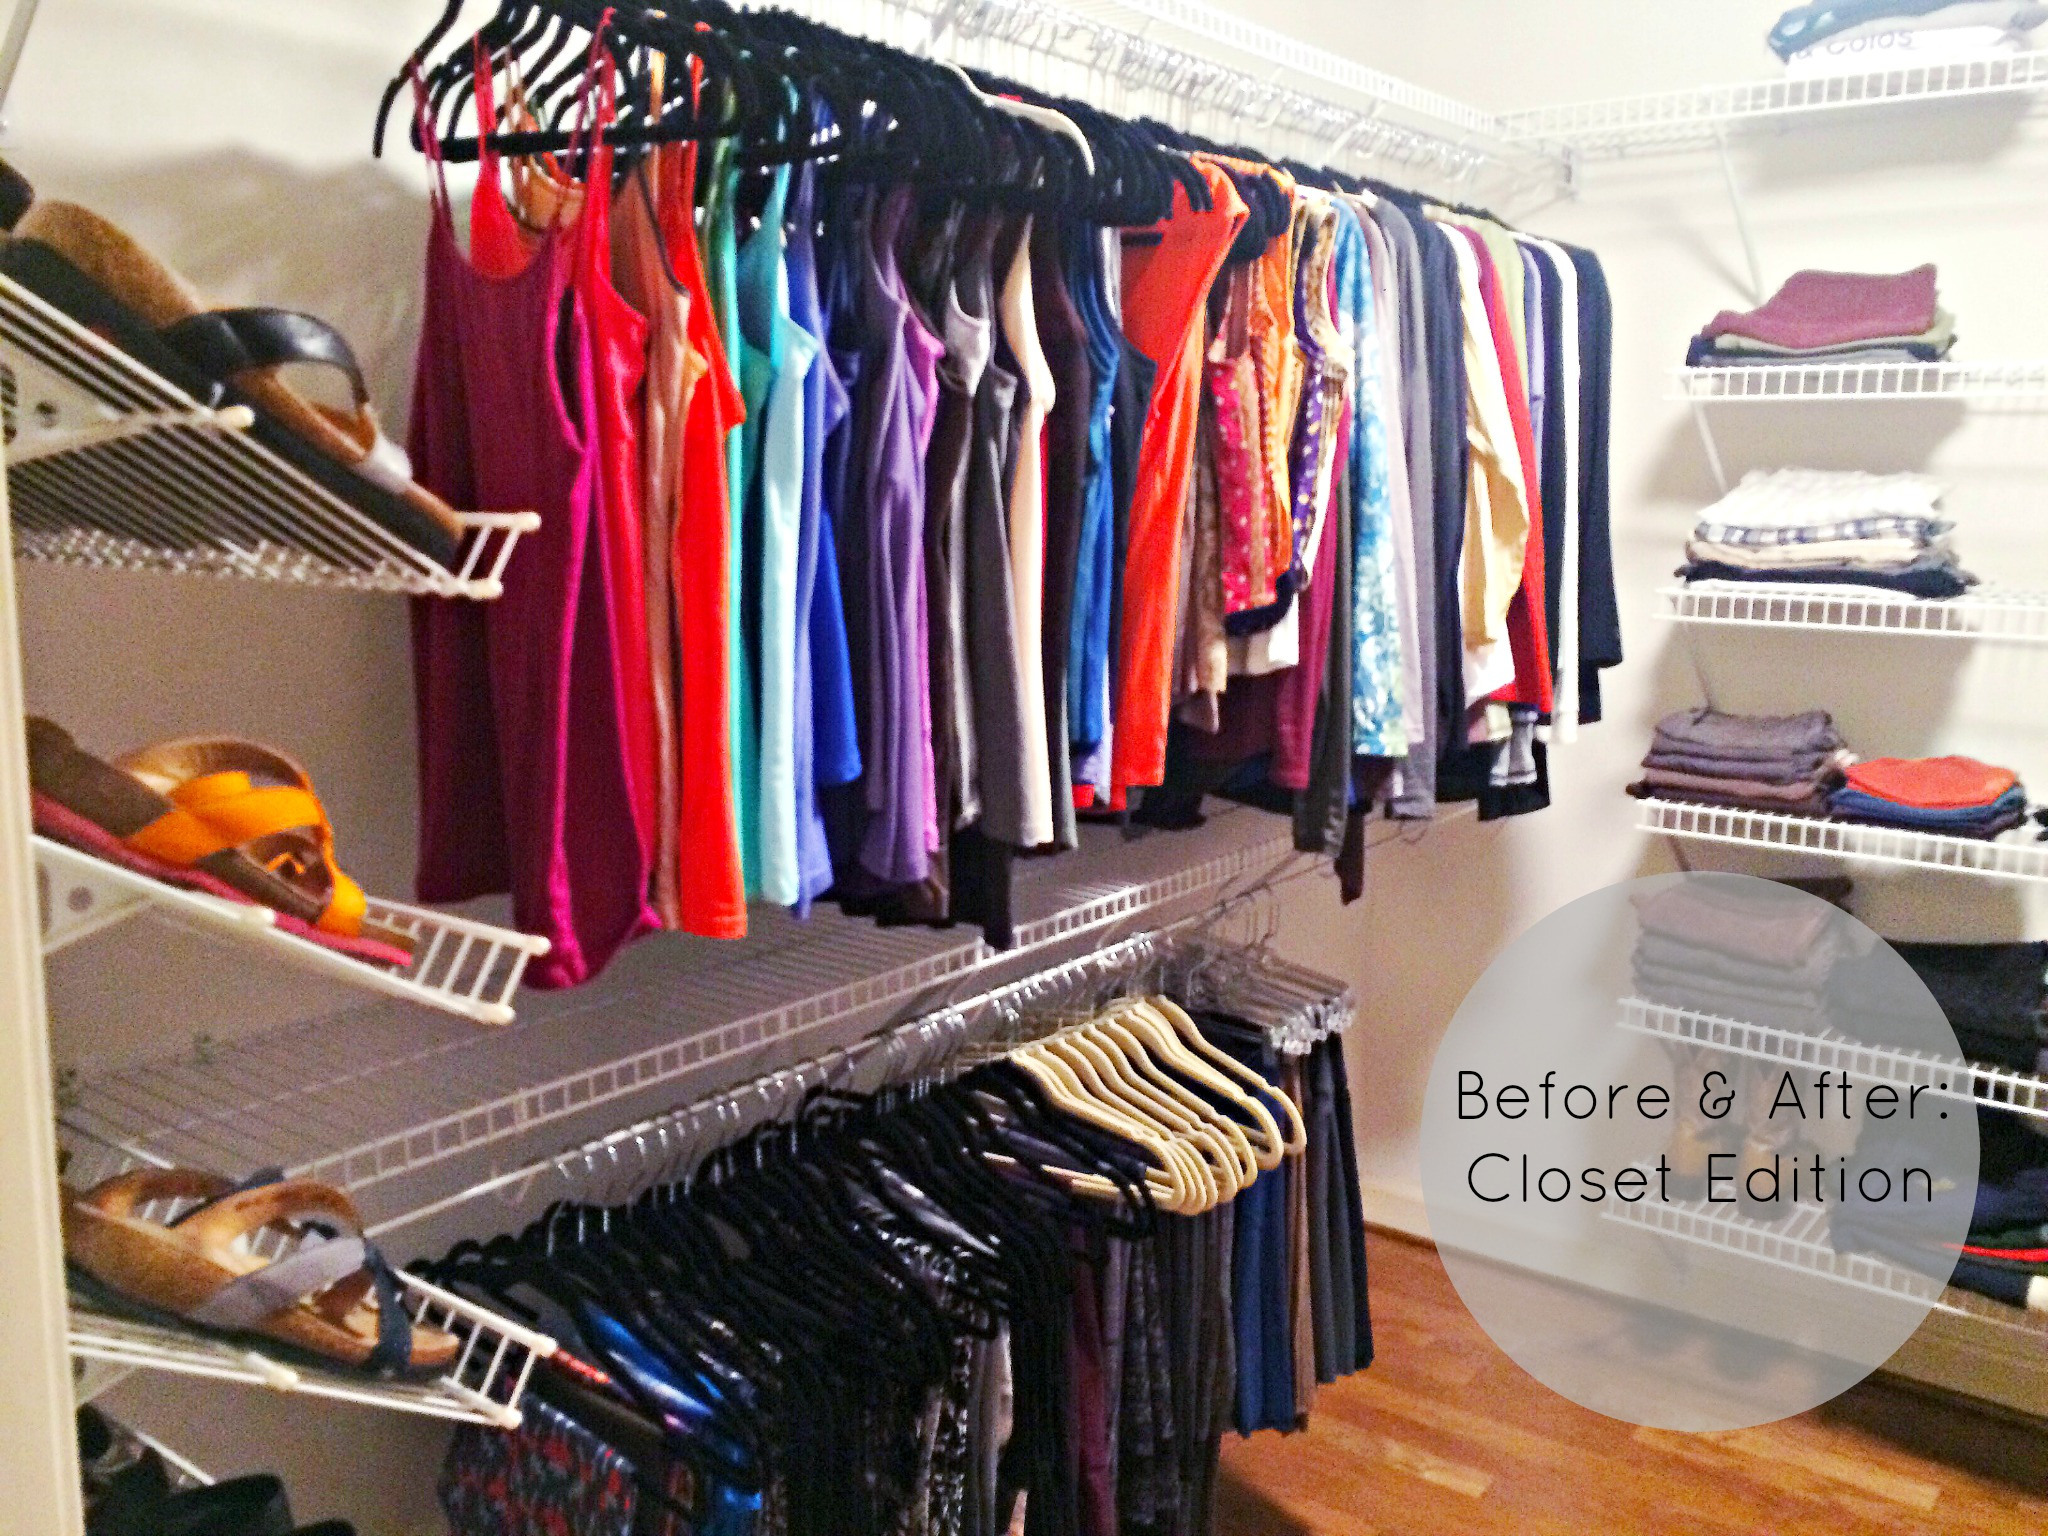 organized simplicity client spaces his hers closet